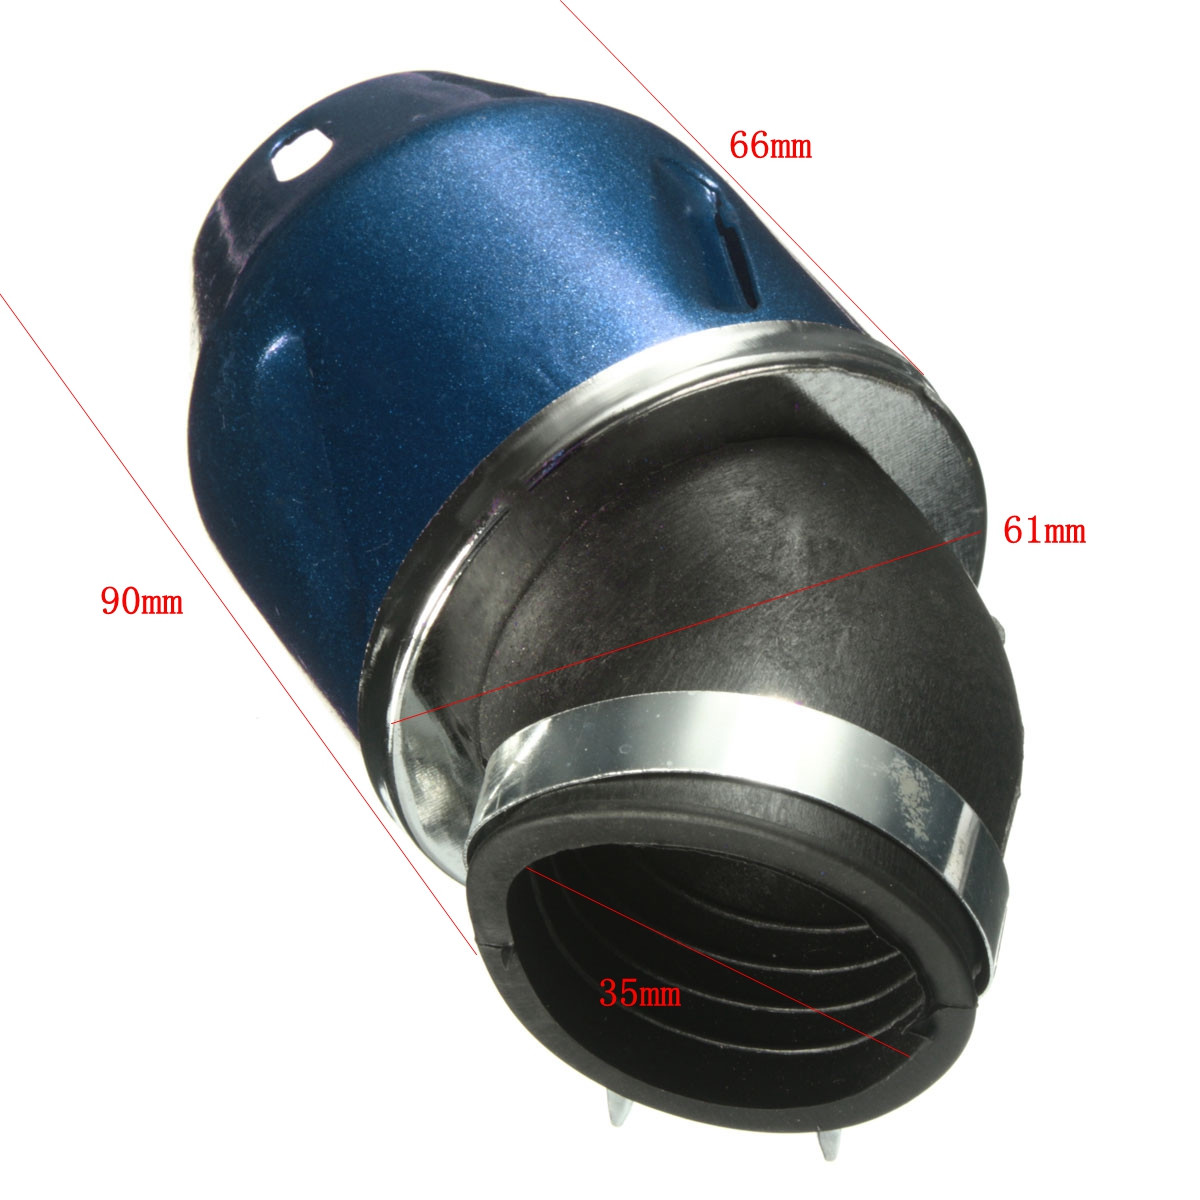 35mm Bullet Air Filter Cleaner Intake 50cc Motorcycle Scooter Dirt Pit ATV Bike Green Black Blue Red Silver